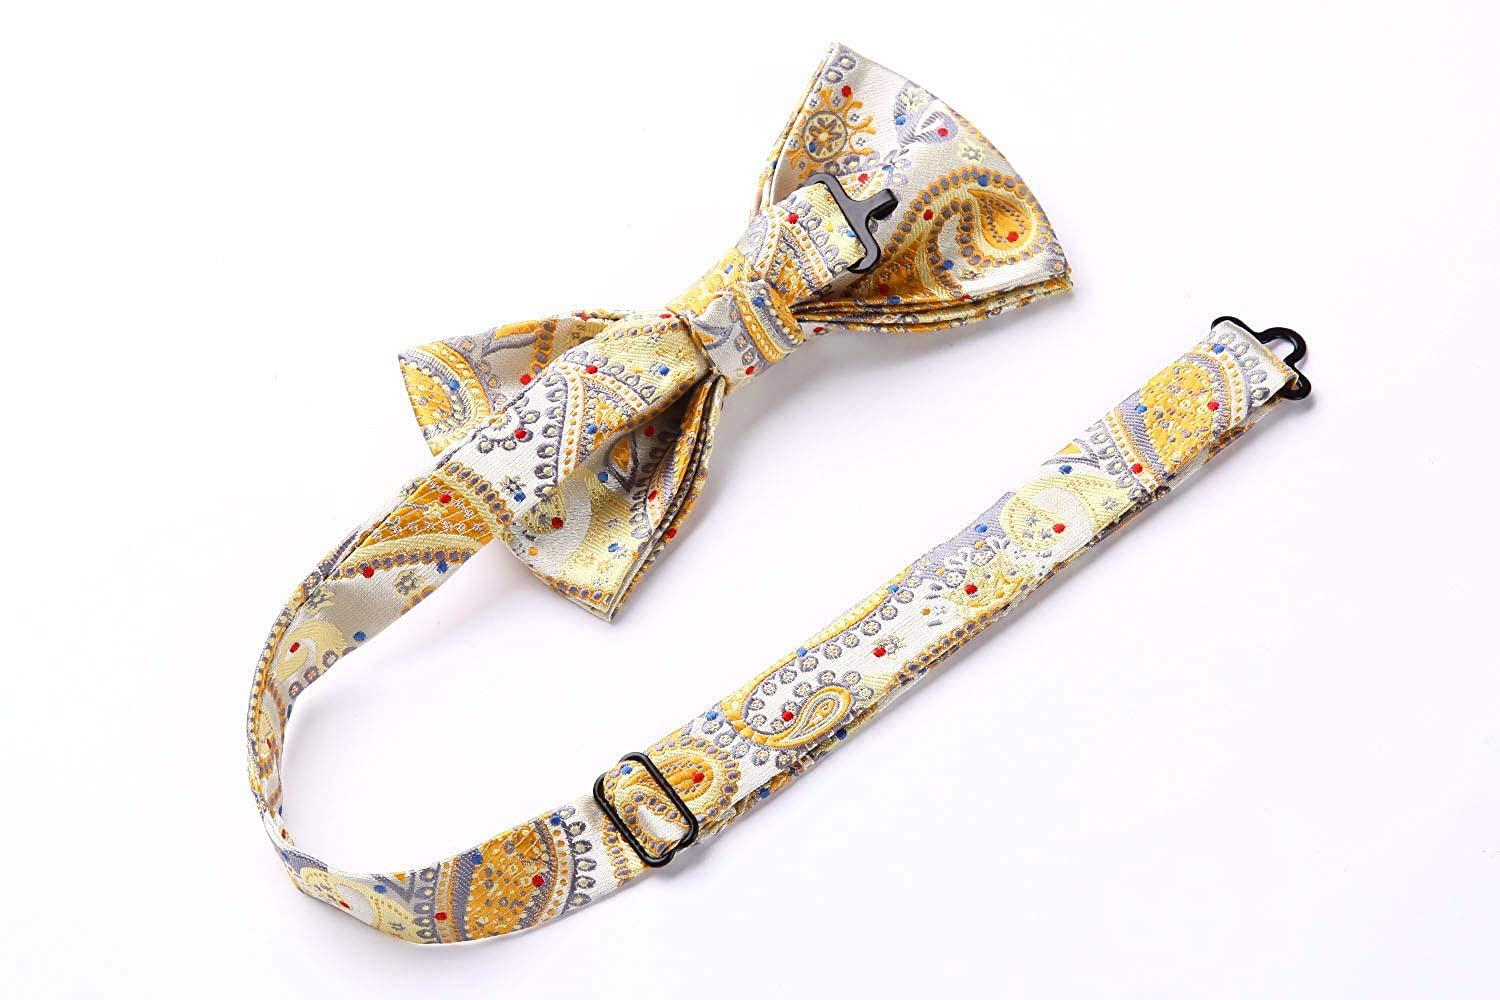 HISDERN Floral Paisley Classic 6 Clips Suspenders /& Bow Tie and Pocket Square Set Y Shape Adjustable Braces SF705APS3